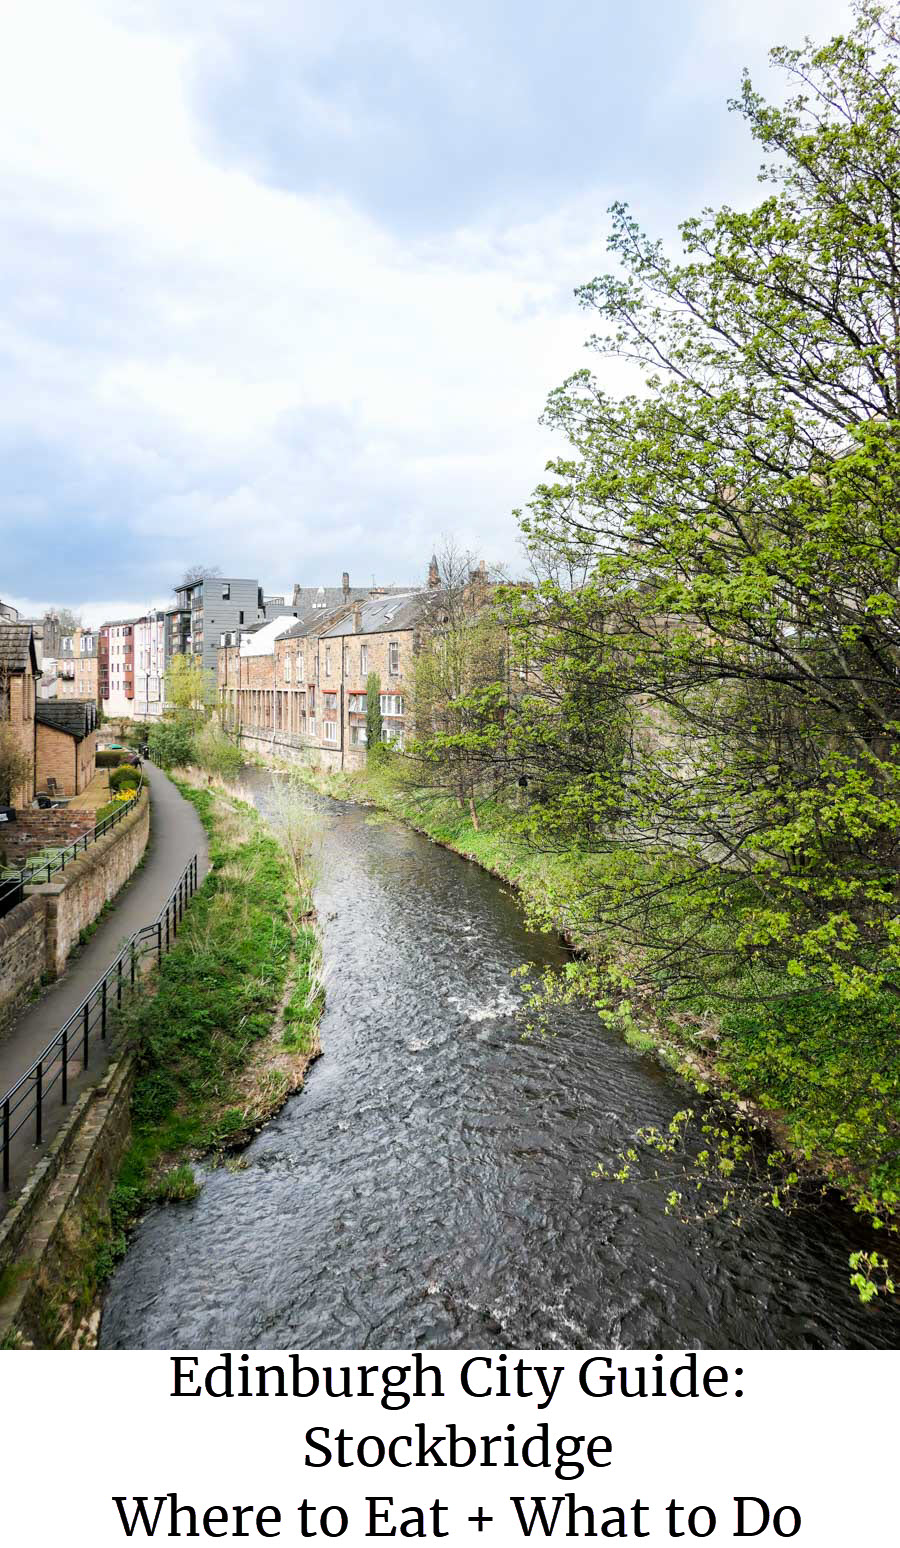 A guide to Stockbridge Edinburgh Restaurants + What to Do. Enjoy this small Edinburgh area with coffee and food recommendations as well as where to get a drink! #travel #scotland #edinburgh